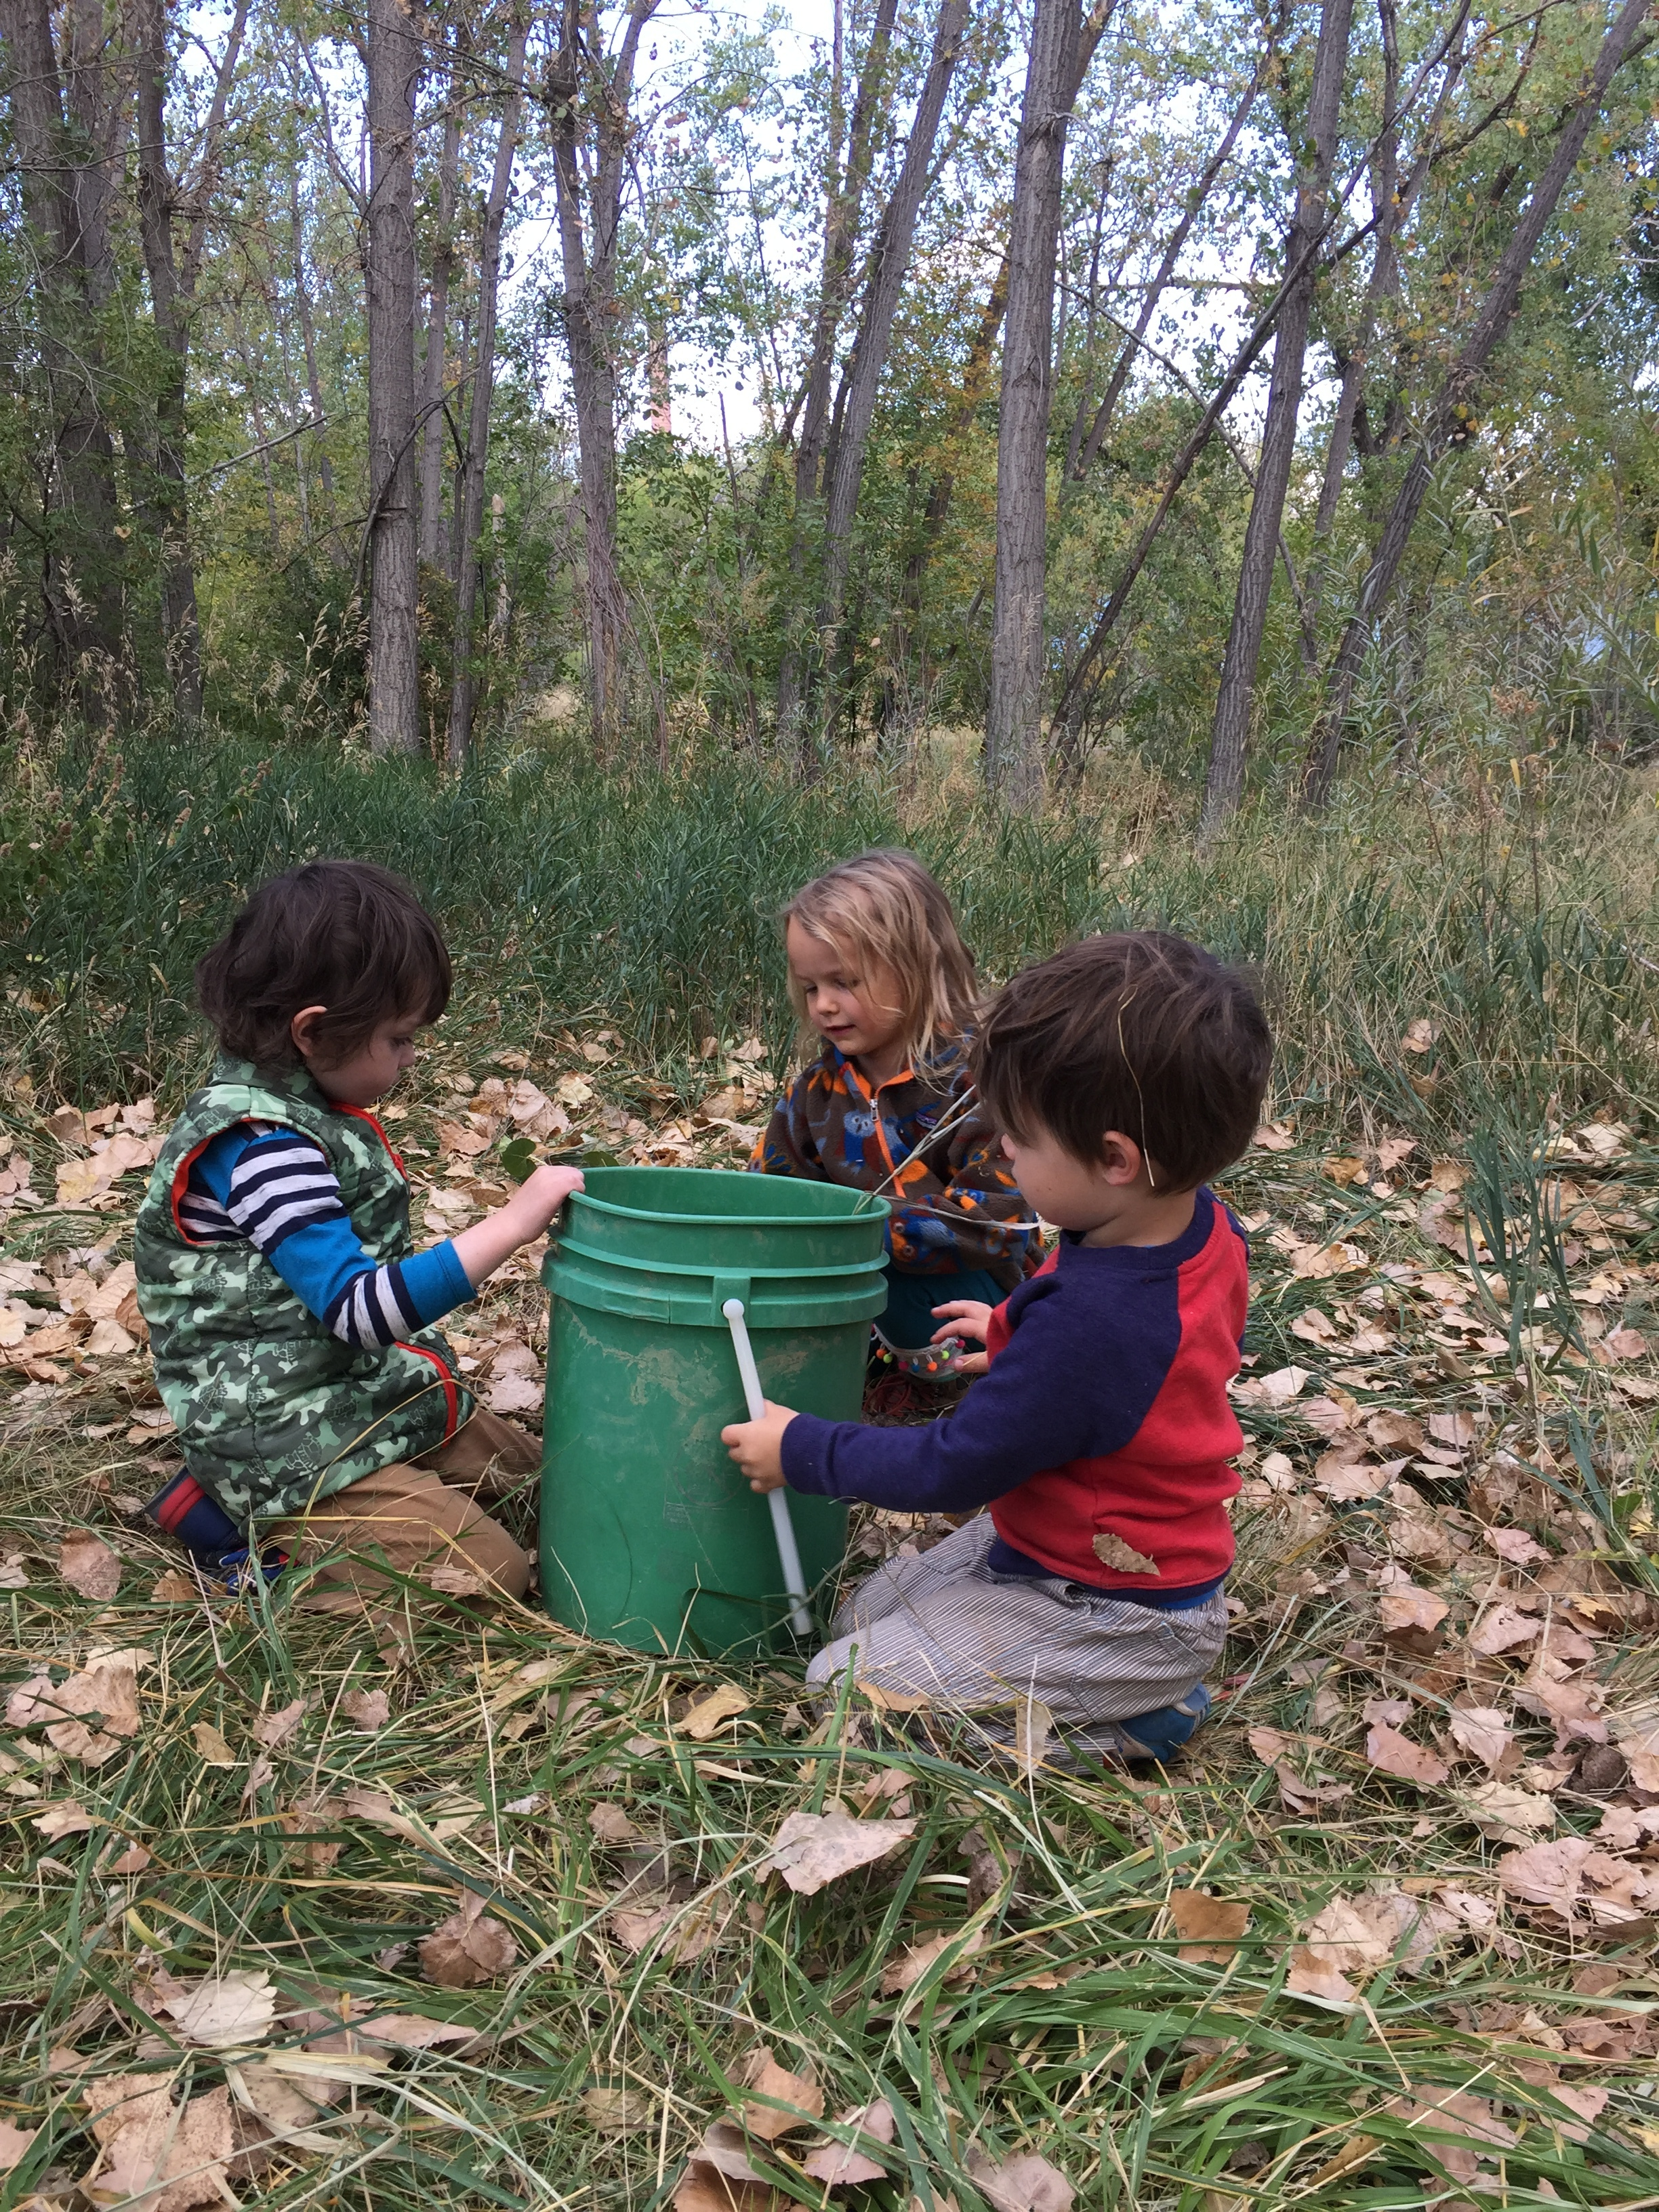 The kids helped each other fill the bucket and then took turns dumping in on their heads.